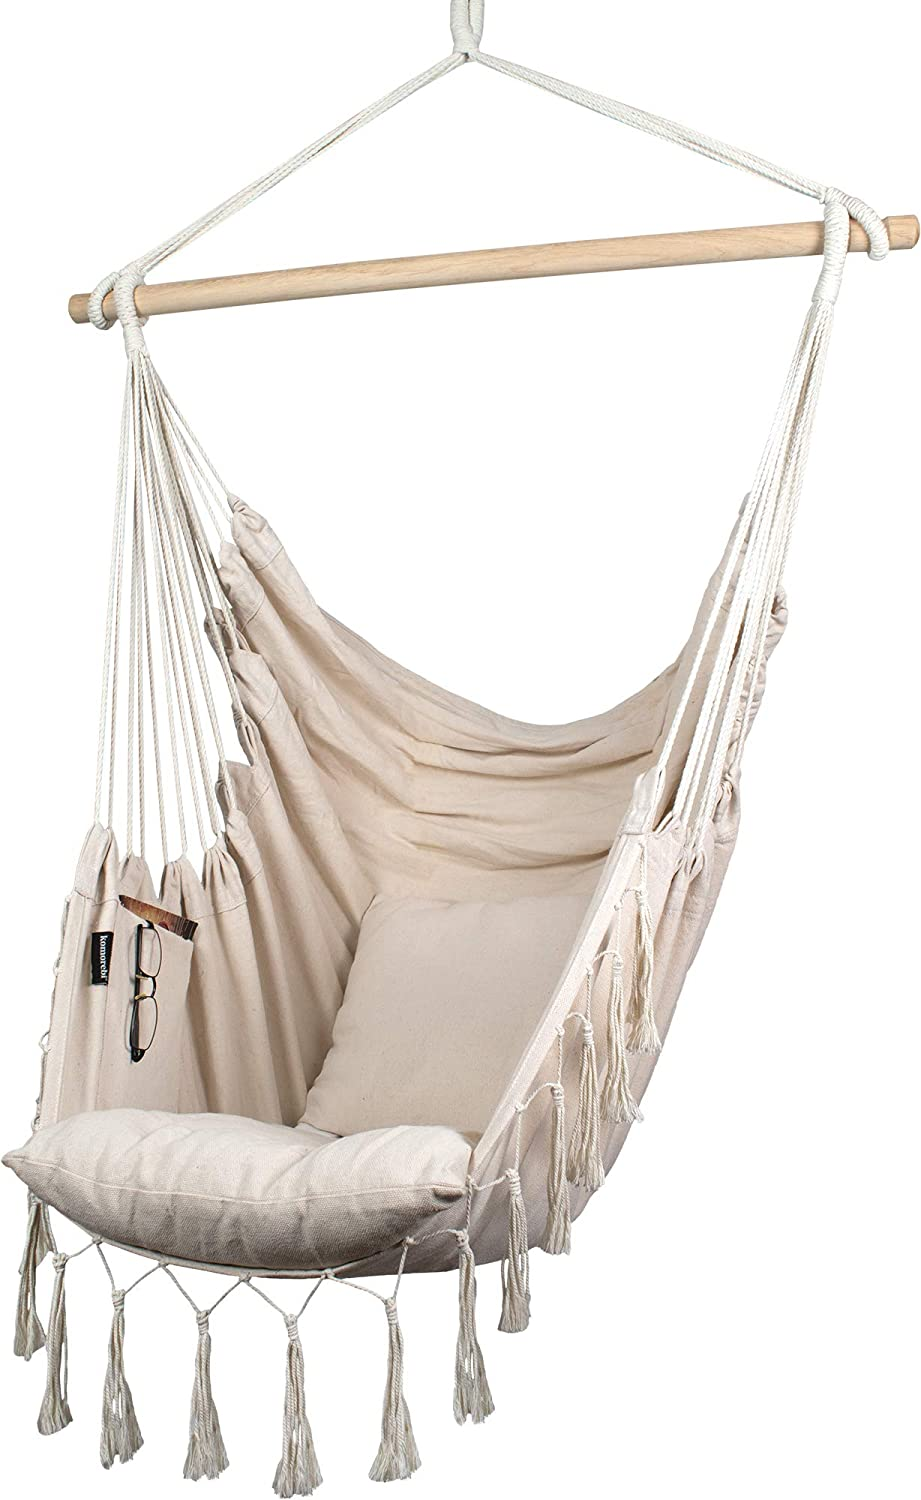 Amazon Com Komorebi Hammock Chair Hanging Rope Swing For Indoor Outdoor Soft Durable Cotton Canvas 2 Cushions Included Large Macrame Hanging Chair With Pocket For Bedroom Patio